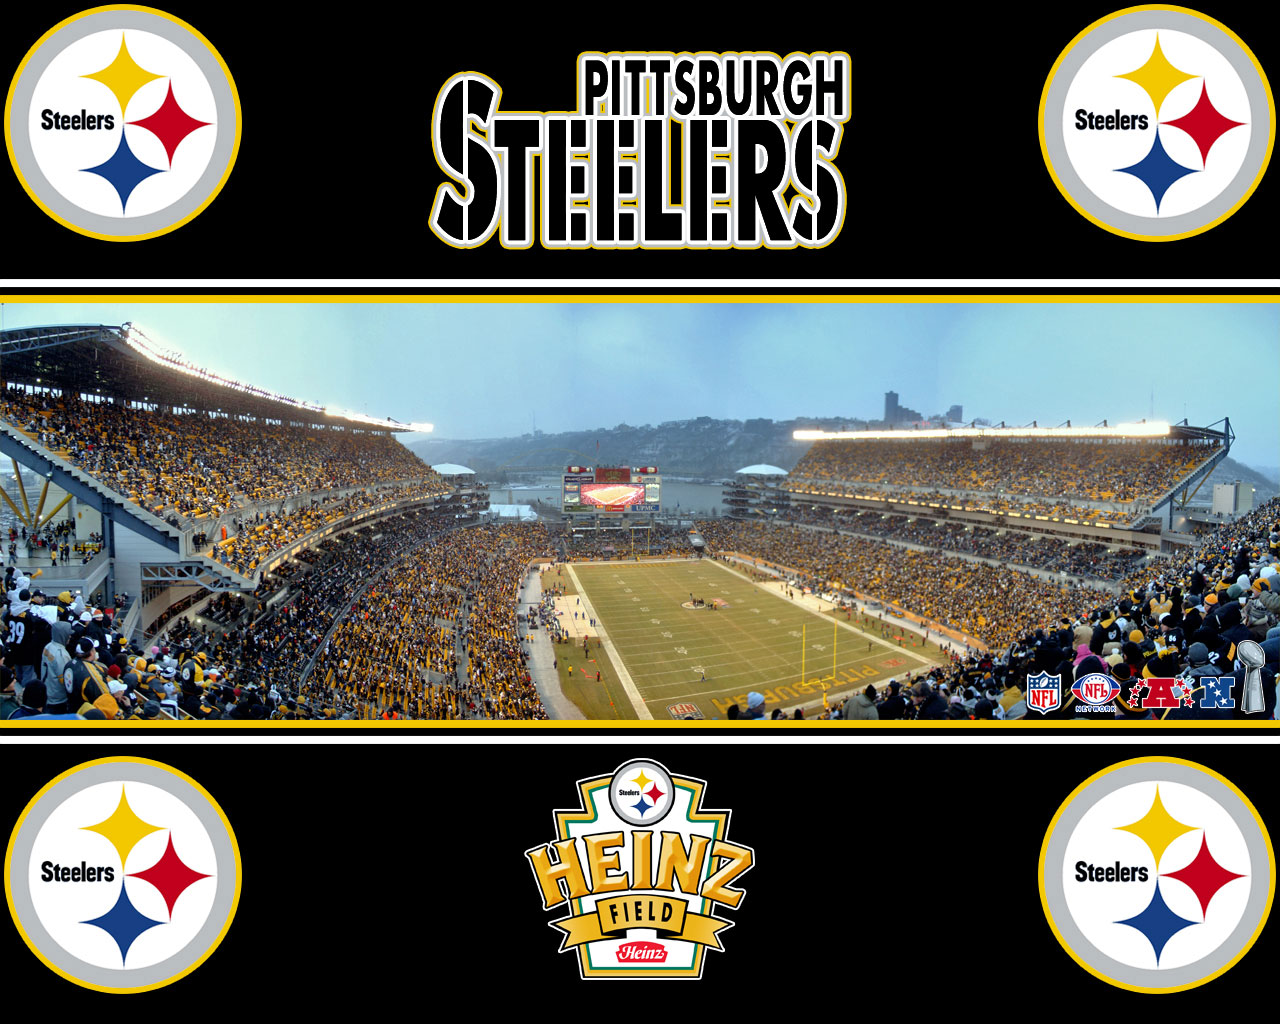 http://4.bp.blogspot.com/_SPY5-z18DBU/TS-ci05T1GI/AAAAAAAAAG4/c53_NmKTZ98/s1600/pittsburgh_steelers_wallpaper_1280x1024.jpeg